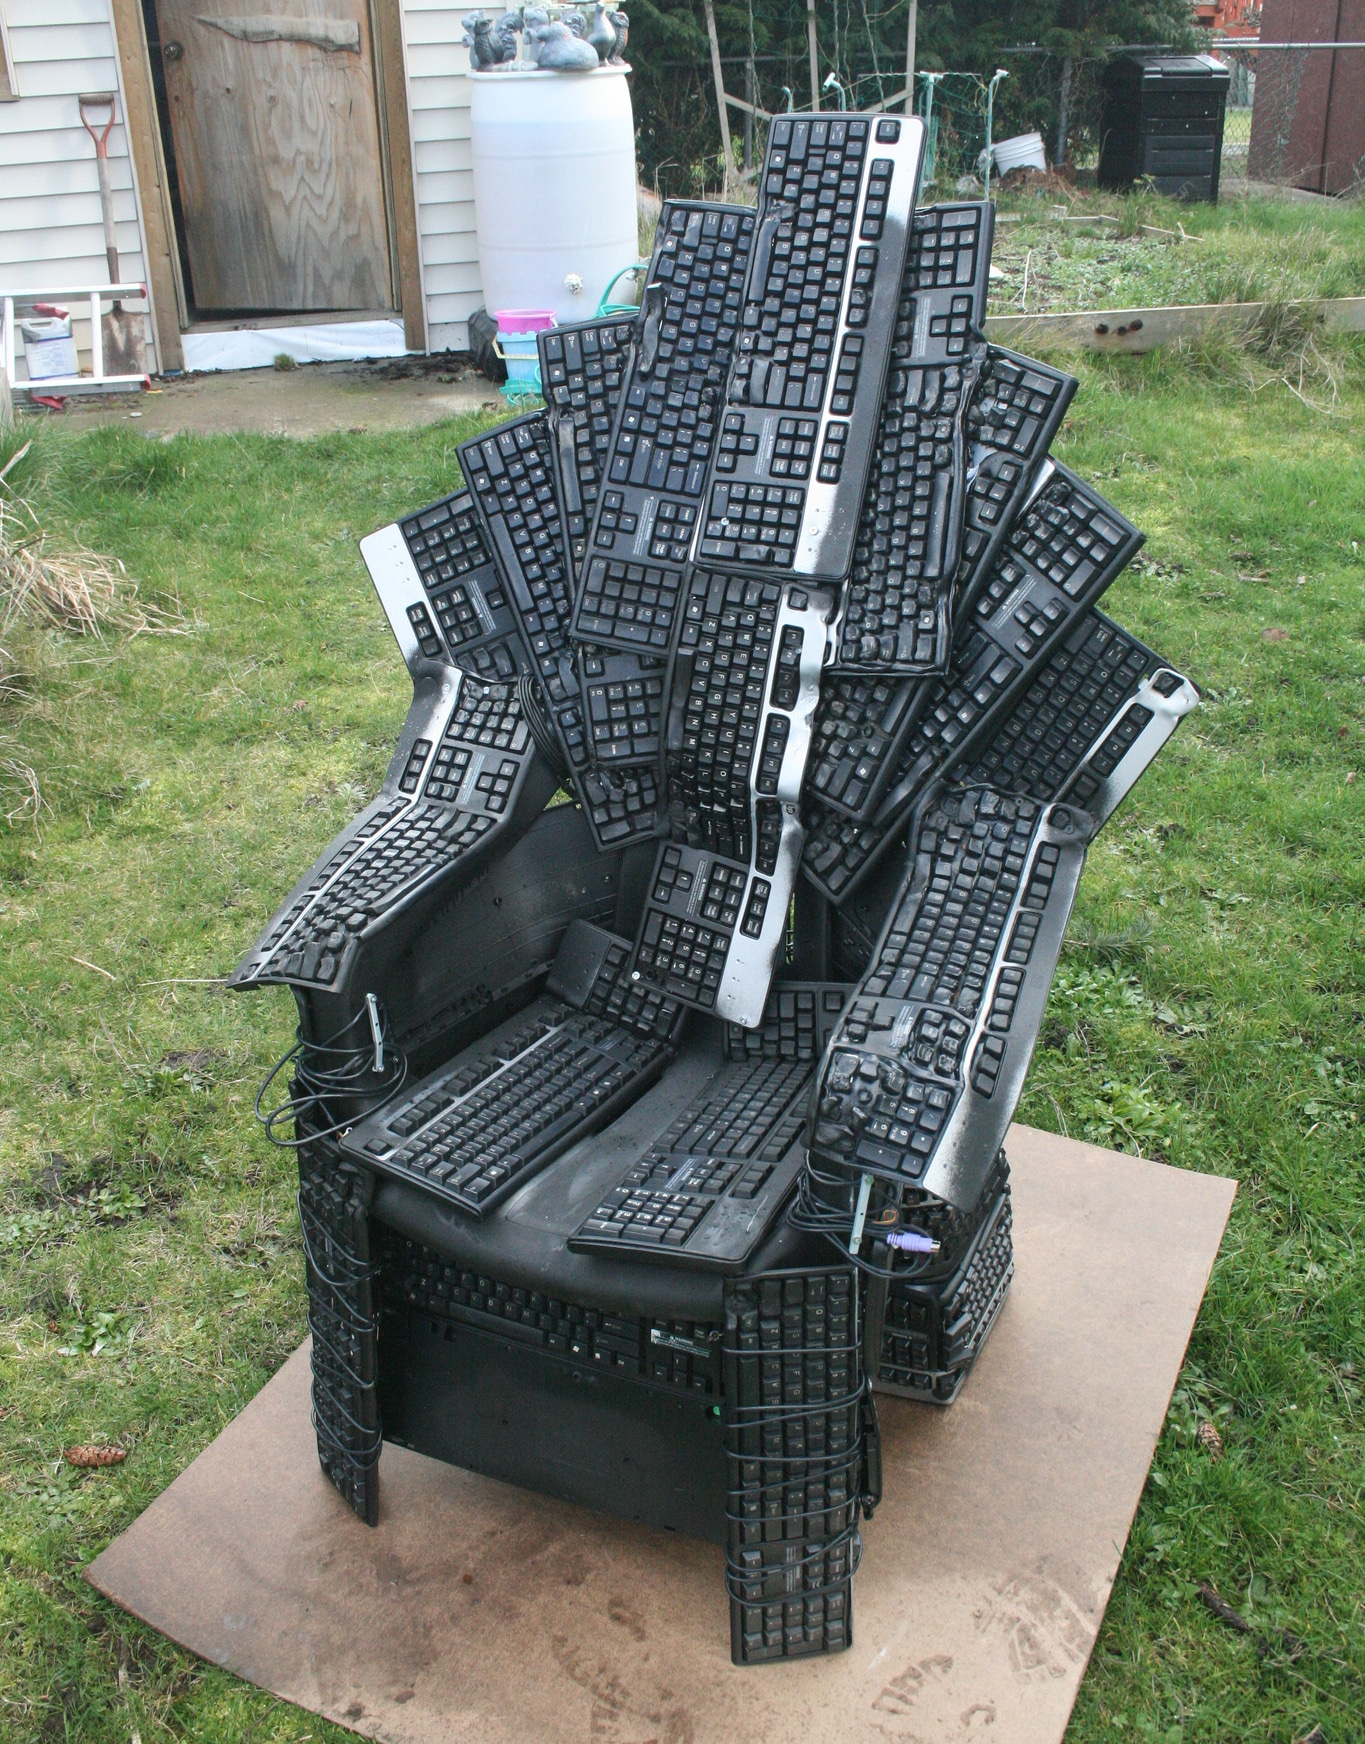 game of throne chair joovy high reviews nerds thrones tribute made from